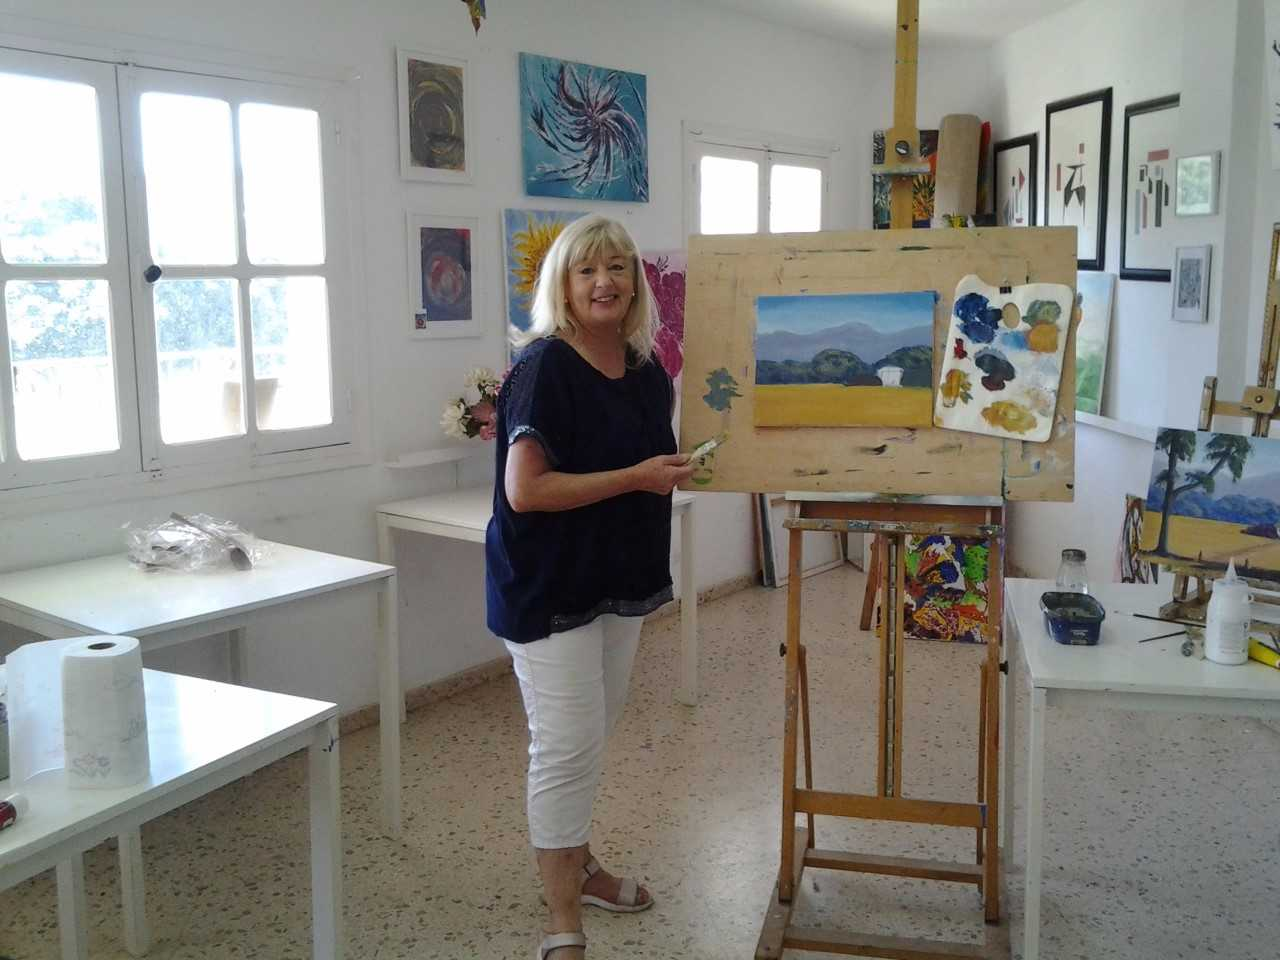 Mijas Arts Centre 20171010093657608.jpg